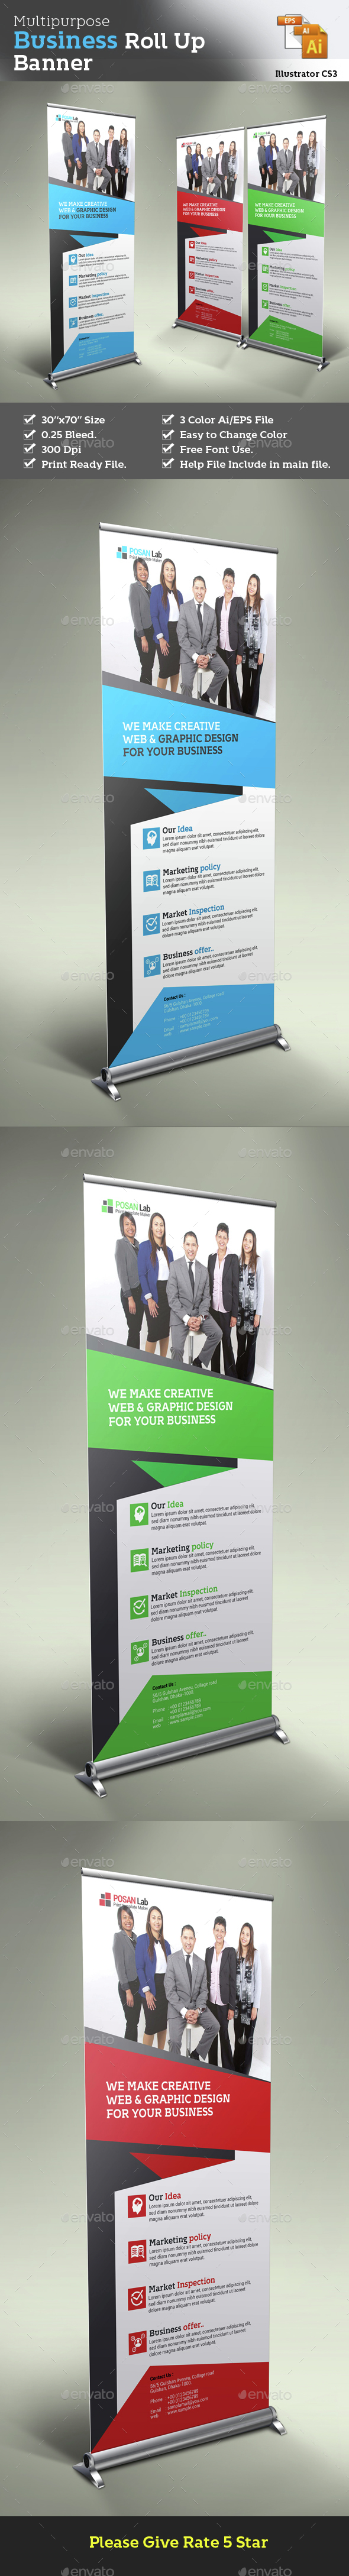 Business Roll Up Stand Banner - Corporate Flyers